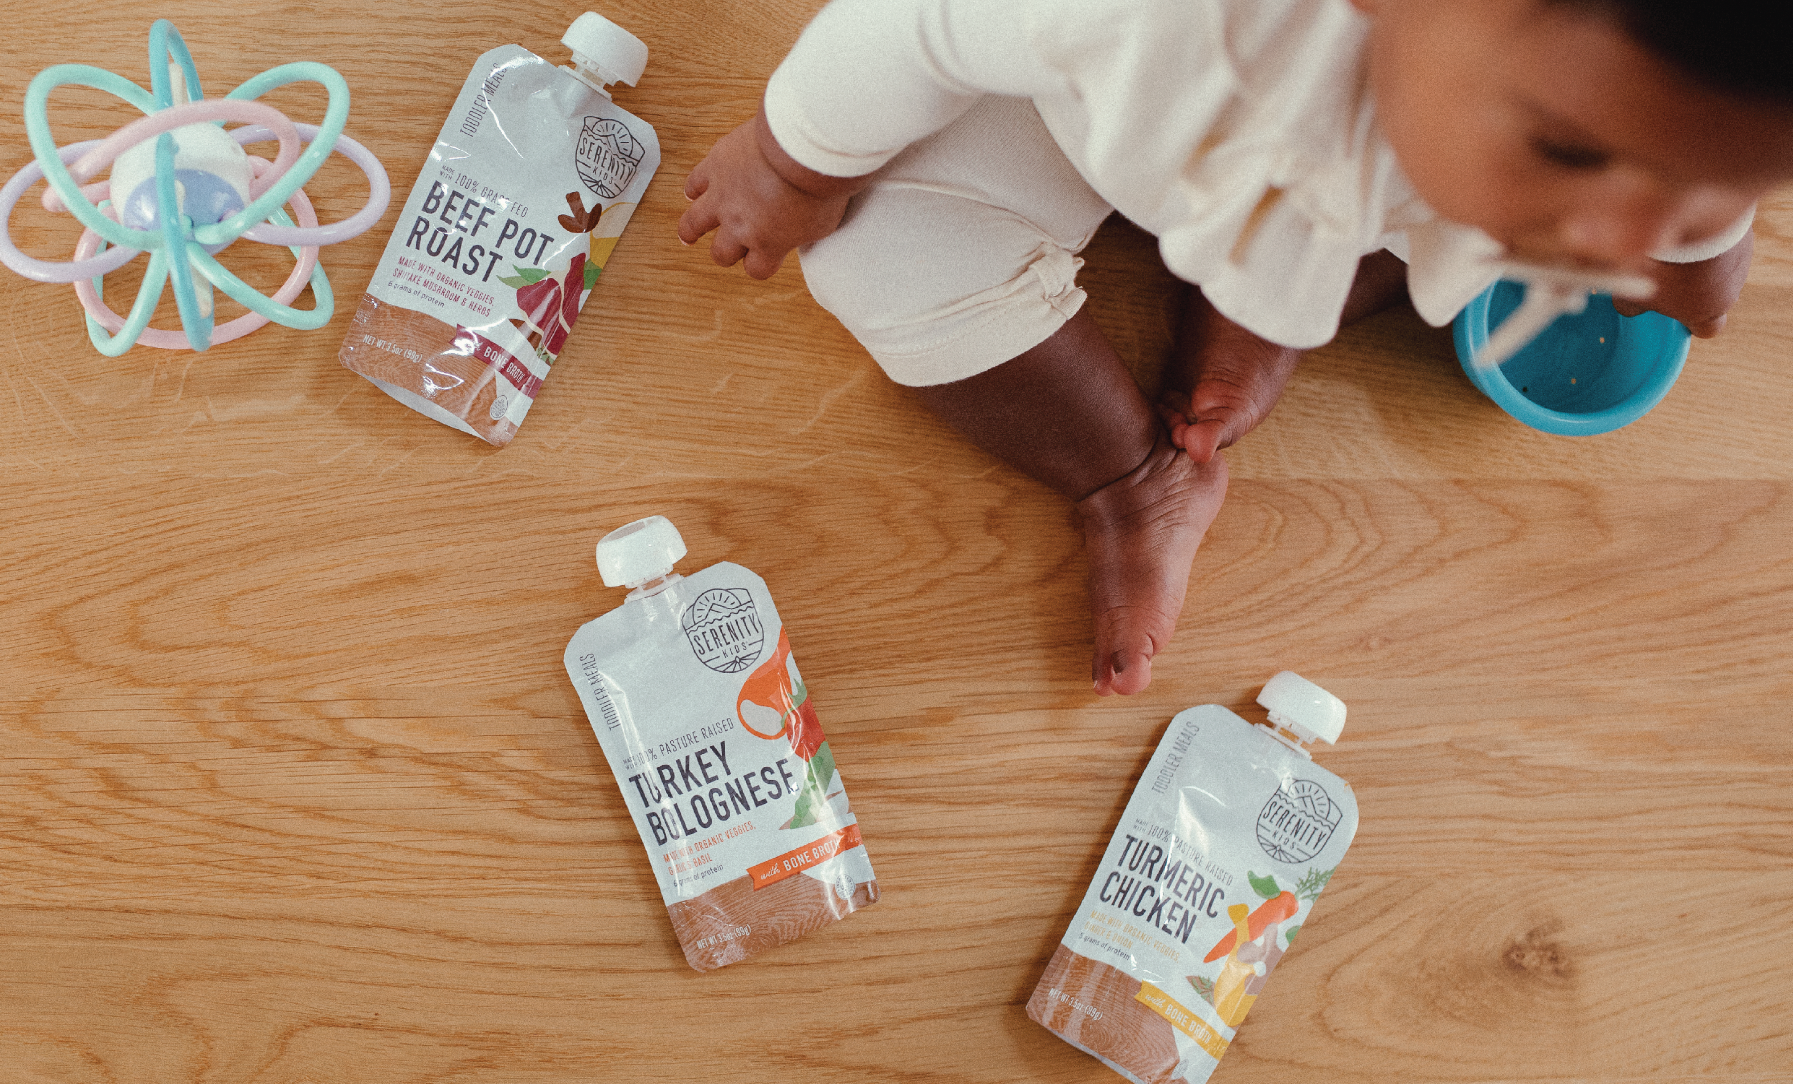 Serenity Kids Launches New Line of Toddler Purees with Bone Broth Nationwide